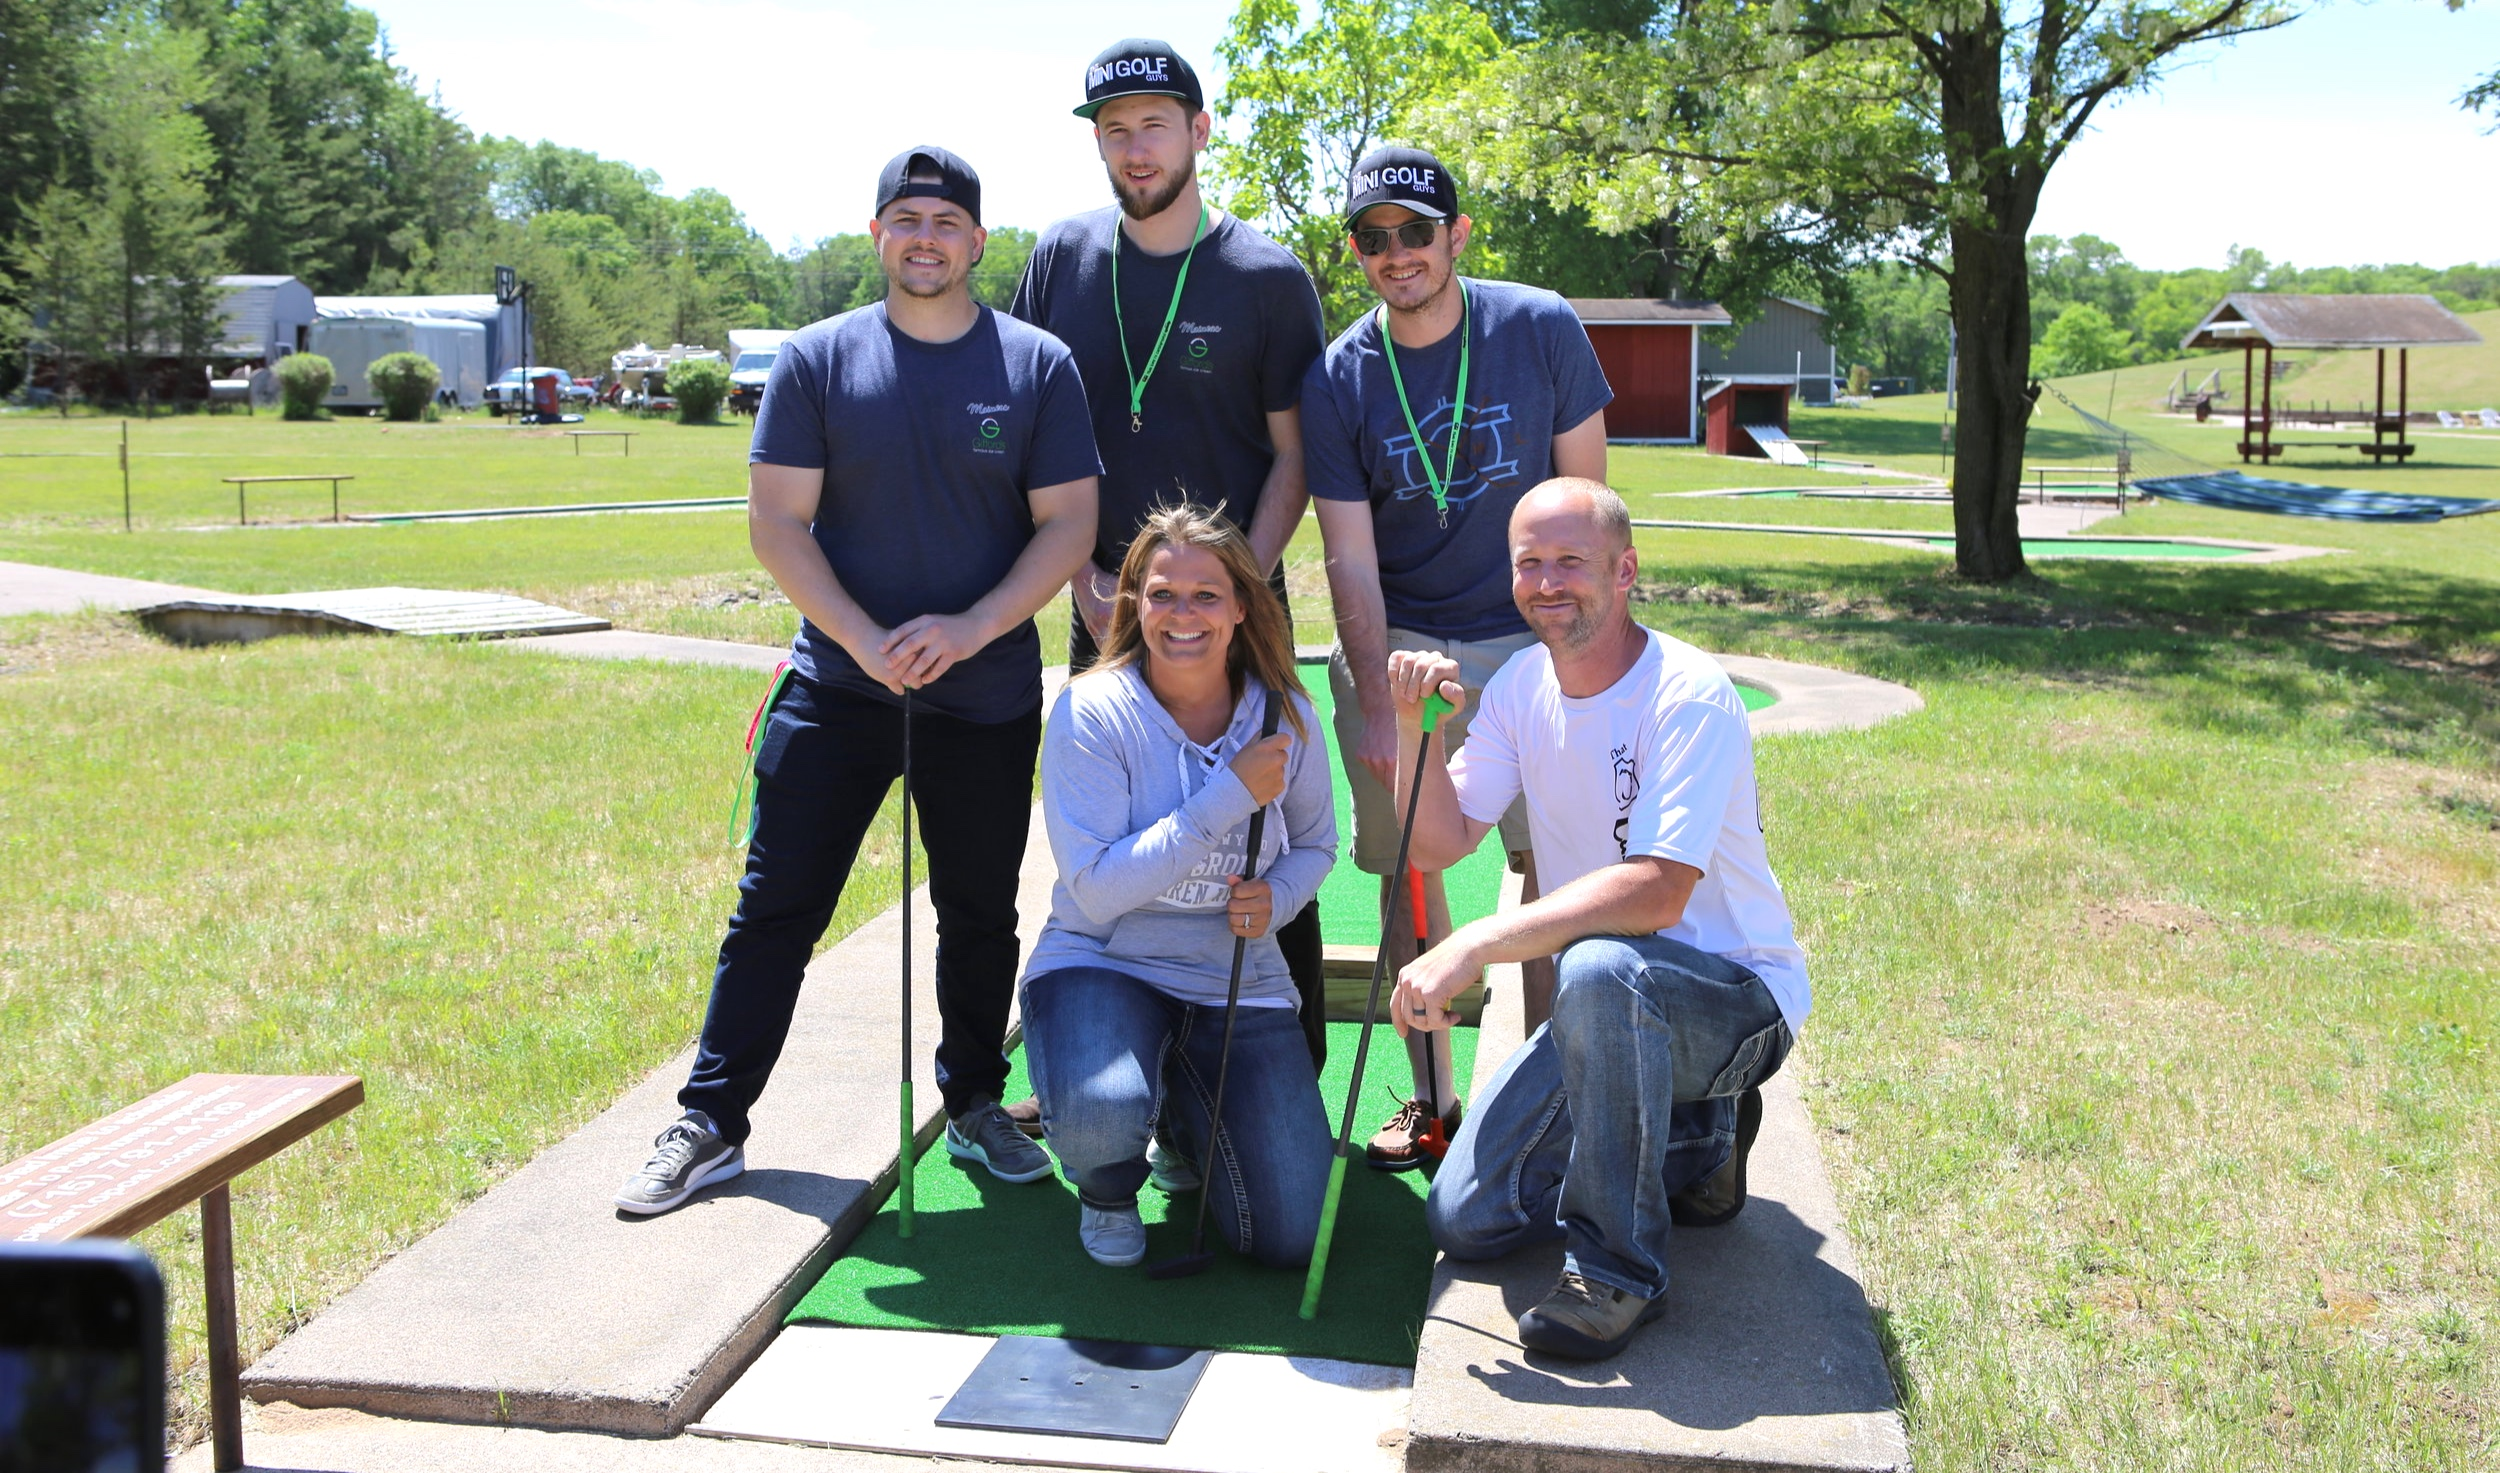 The Mini Golf Guys pose for a photo at That Highway 70 Campground in Siren, Wisconsin with the new owners. The course reopened this summer after decades of being defunct. It was the first course The Mini Golf Guys ever played as a group.